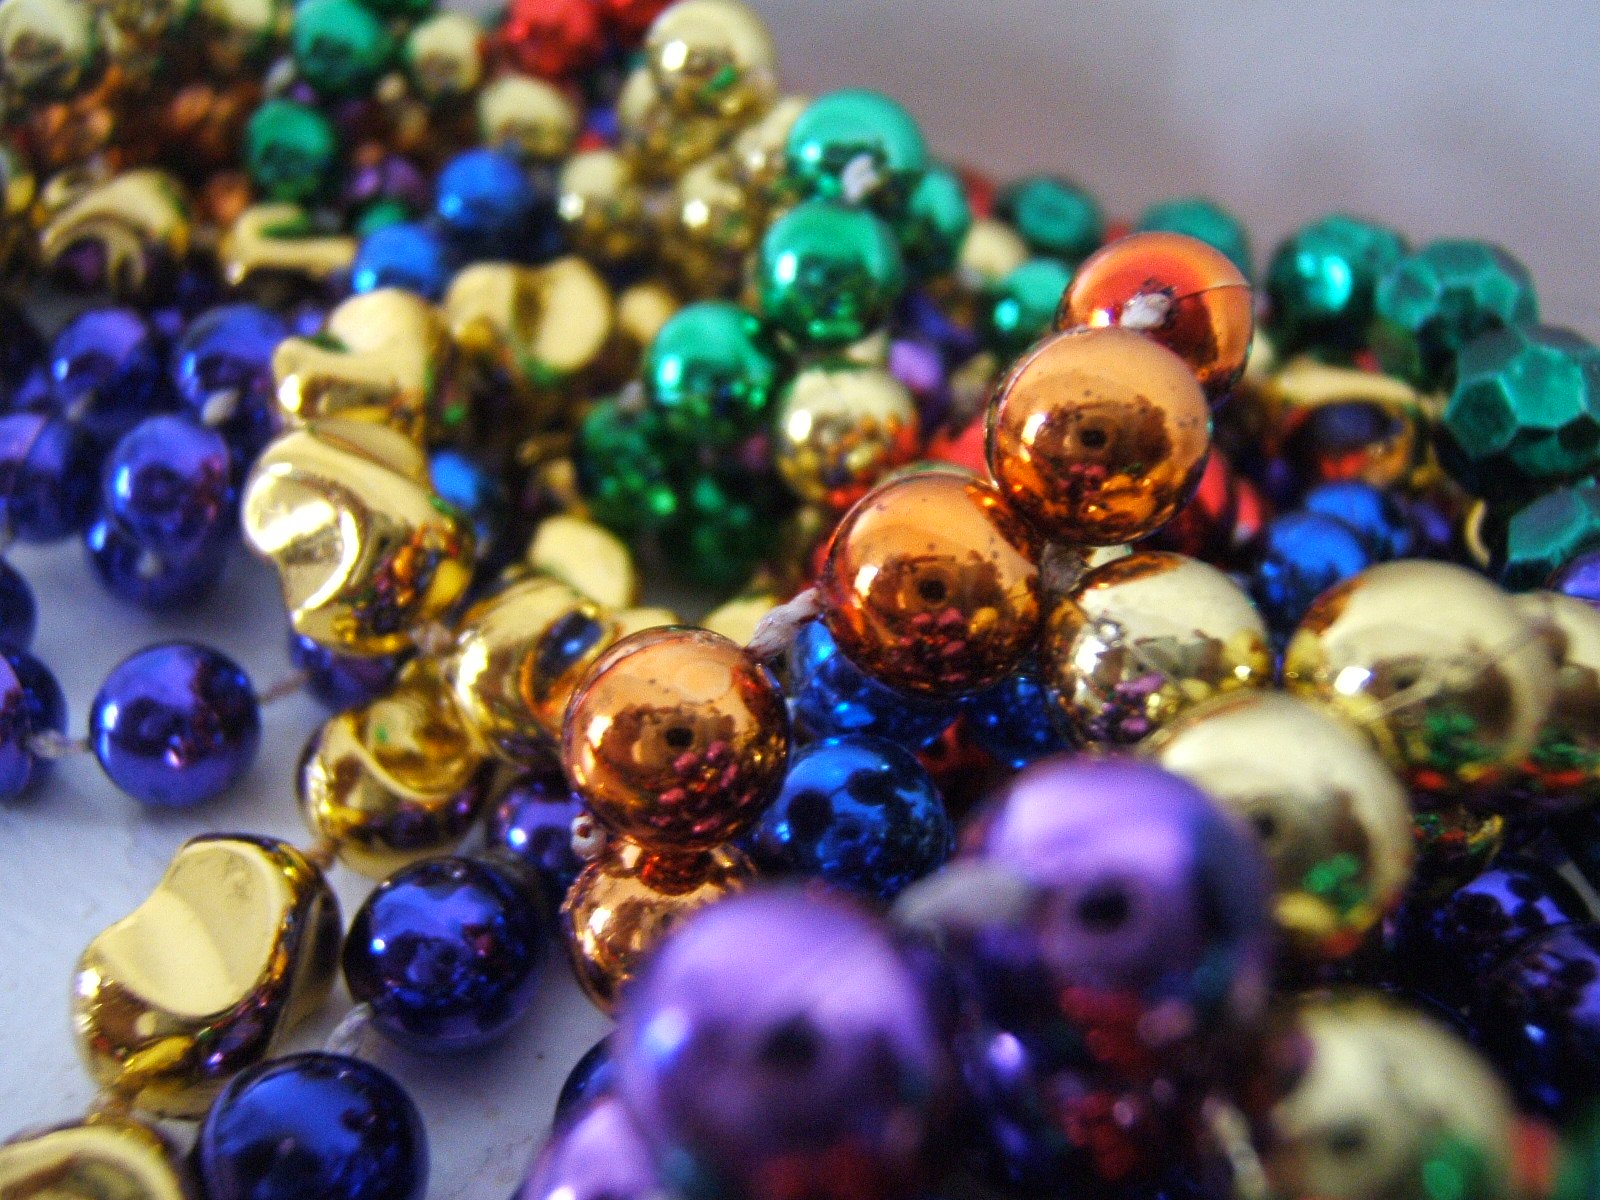 Mardi Gras season is just about here, that means it's time to figure